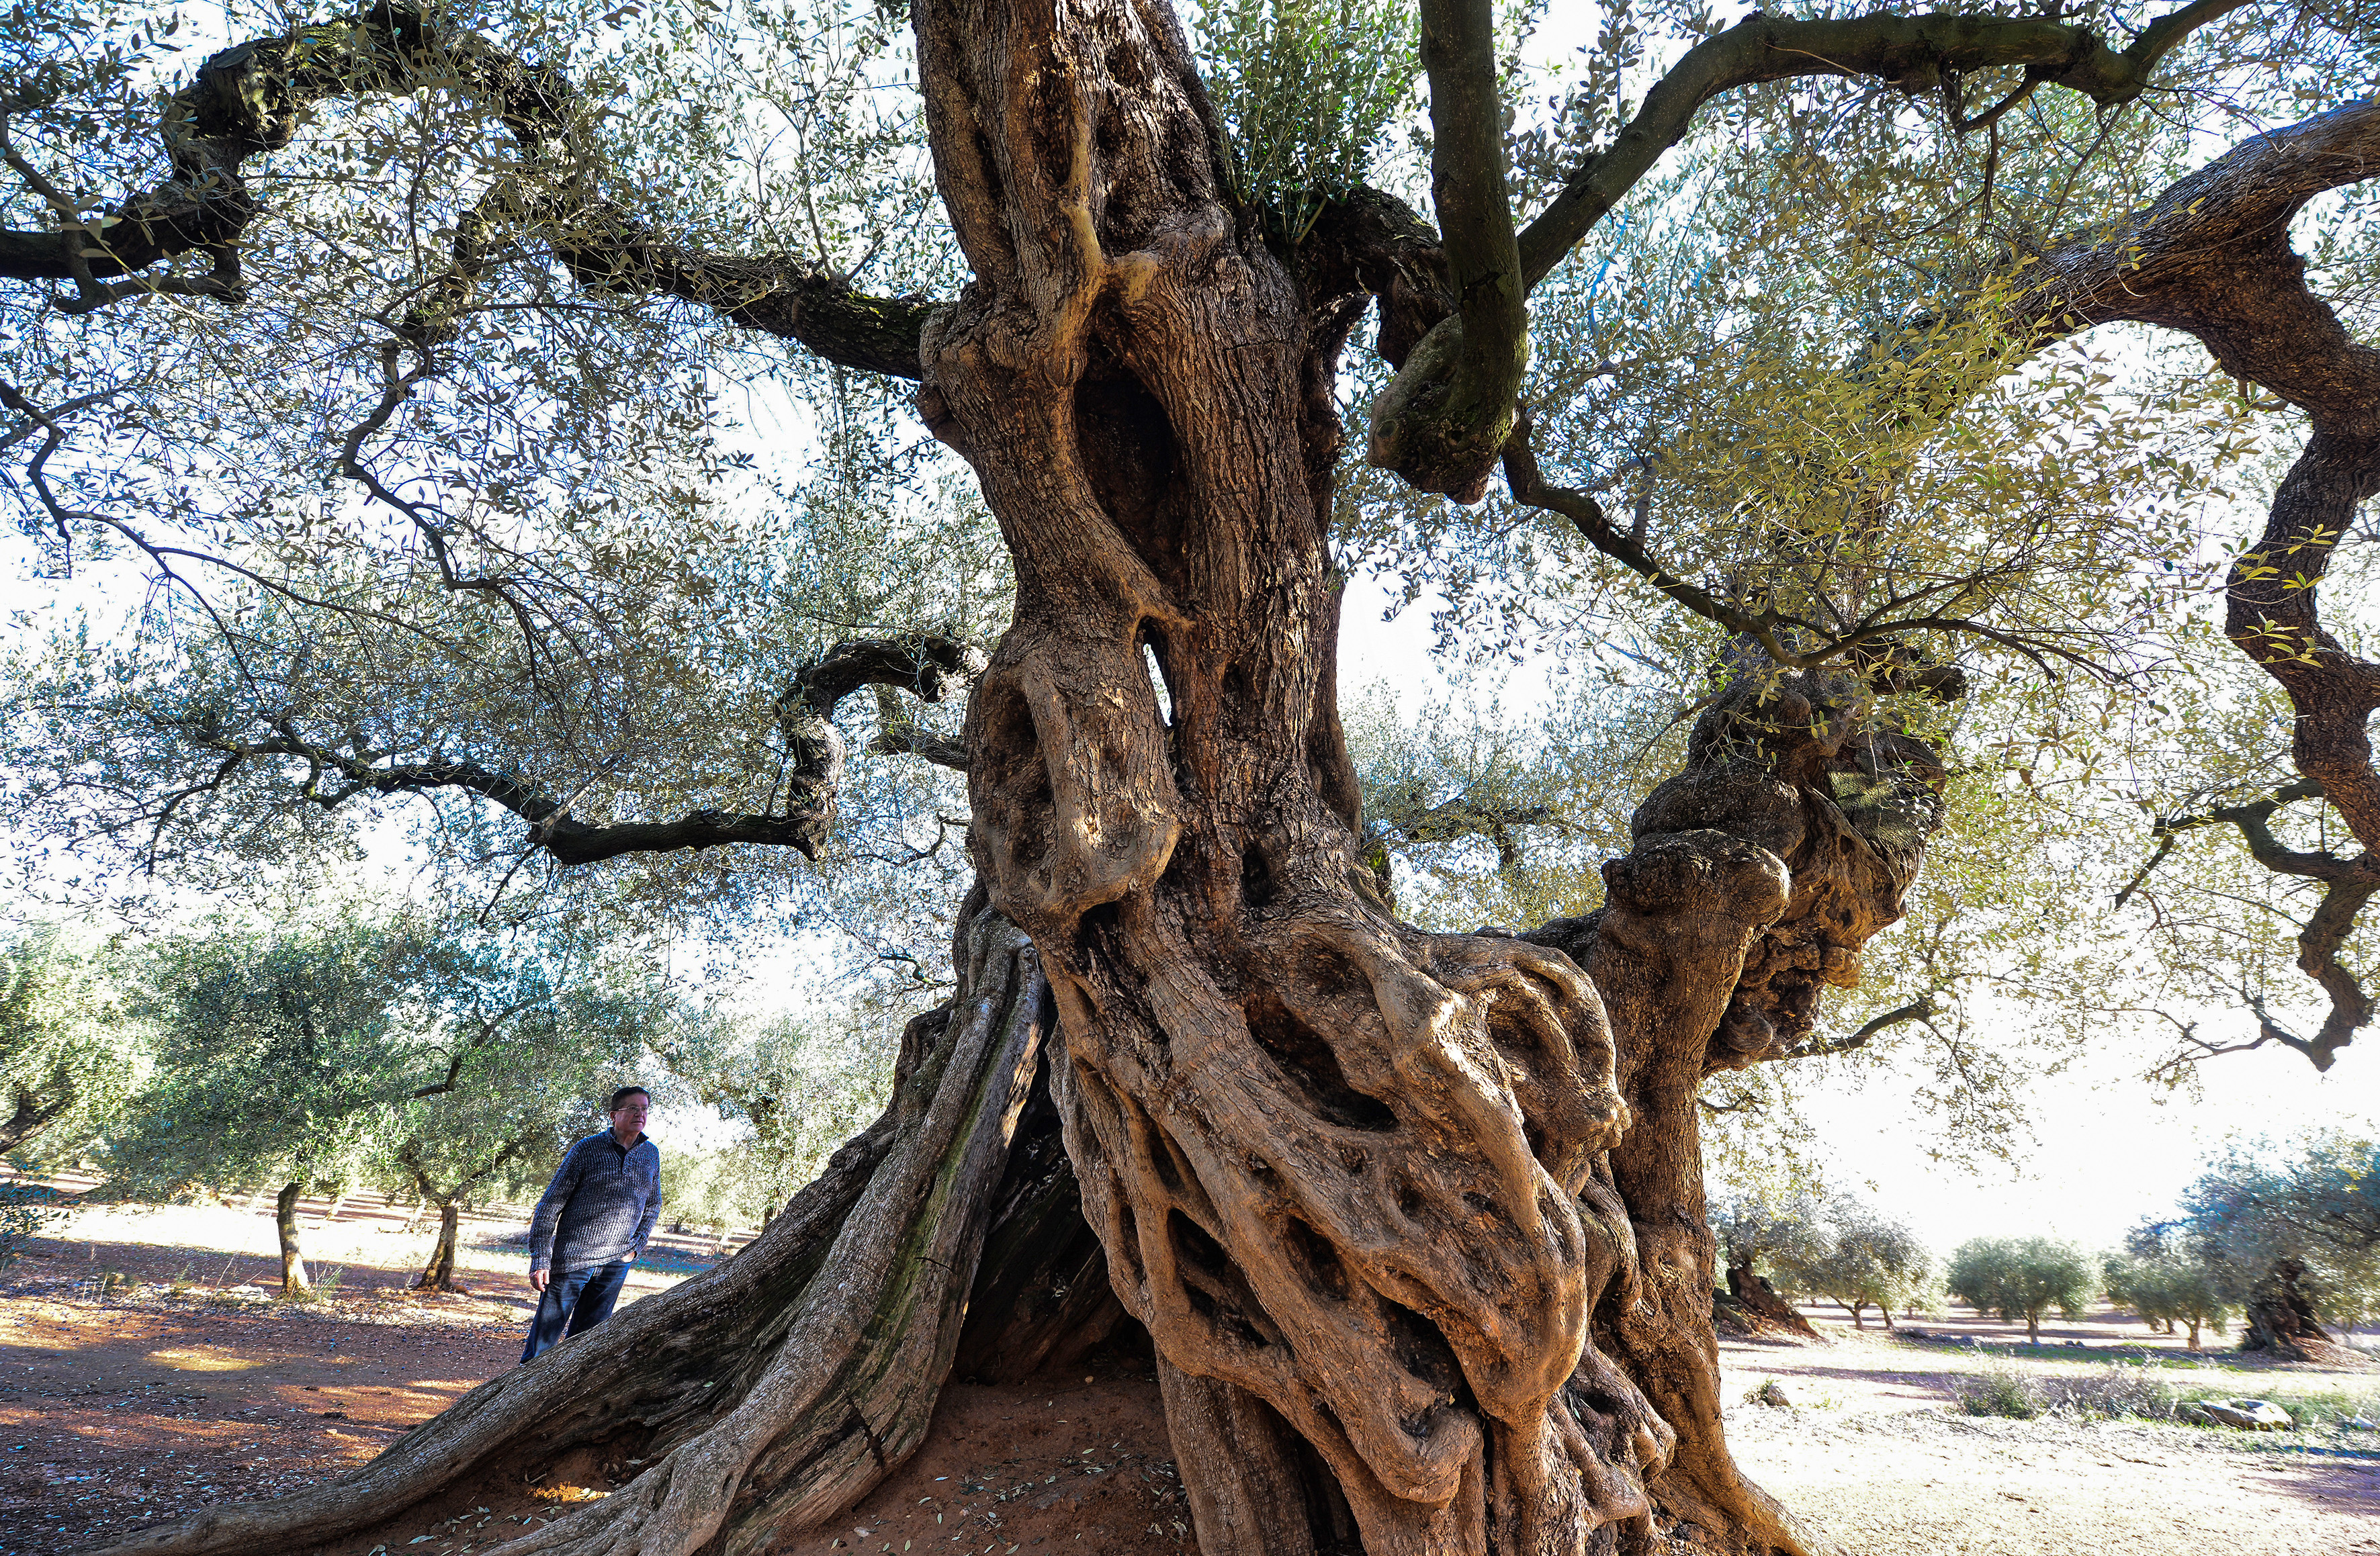 """A man looks at the millennia old olive tree, famous for """"staring"""" in the film """"the Olive"""" by Spanish director Iciar Bollain , in an olive grove in the municipality of Uldecona, on December 6, 2016. The sun sets in eastern Spain and dozens of ancient olive trees cast long shadows on the ground.  / AFP PHOTO / JOSE JORDAN / TO GO WITH AFP STORY BY Michaela CANCELA-KIEFFER"""